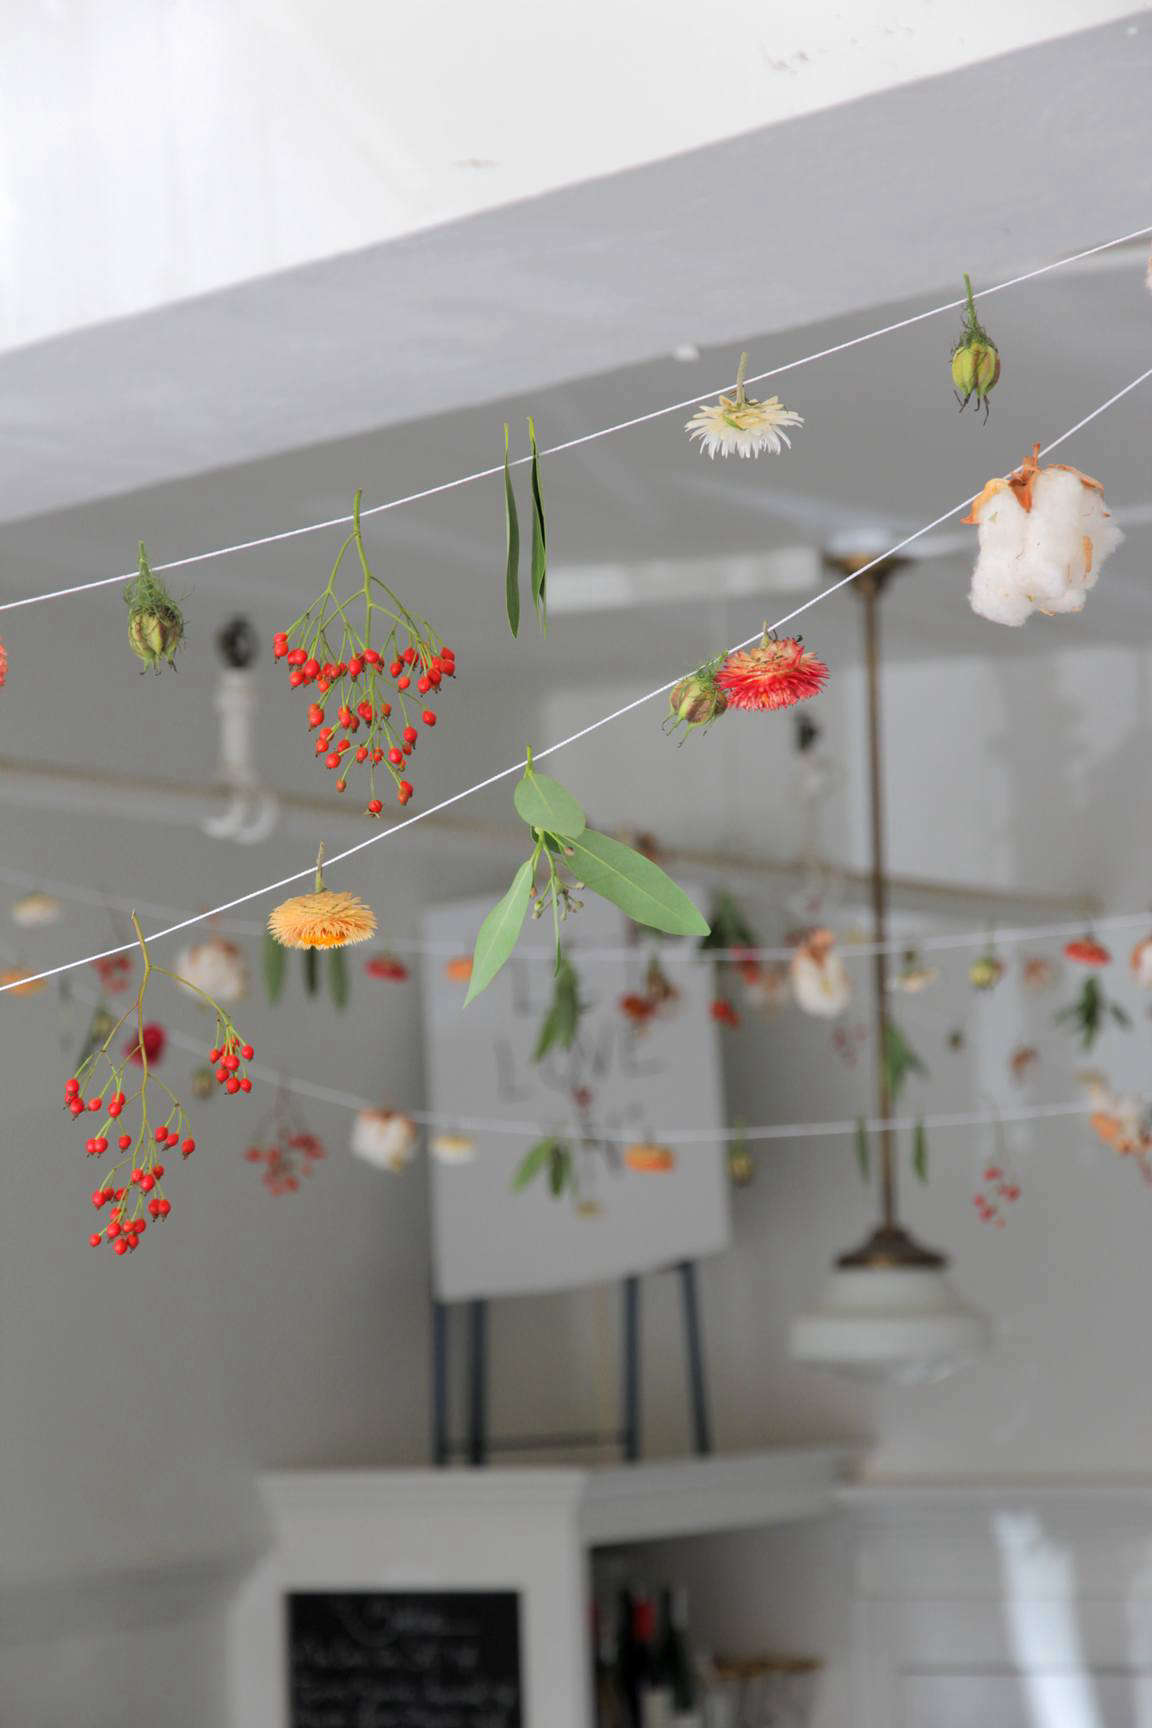 """We fell for the artful, ad-hoc garland strung across the ceiling of Måurice, a tiny Norwegian- and French-inspired """"modern pastry luncheonette"""" in downtown Portland, Oregon, when we featured the cafe interiors on Remodelista. Fortunately the pastry chef and the florist behind the garland shared their secrets with us; read more inDIY: An Artful Botanical Garland by Måurice in Portland, OR, on Remodelista."""